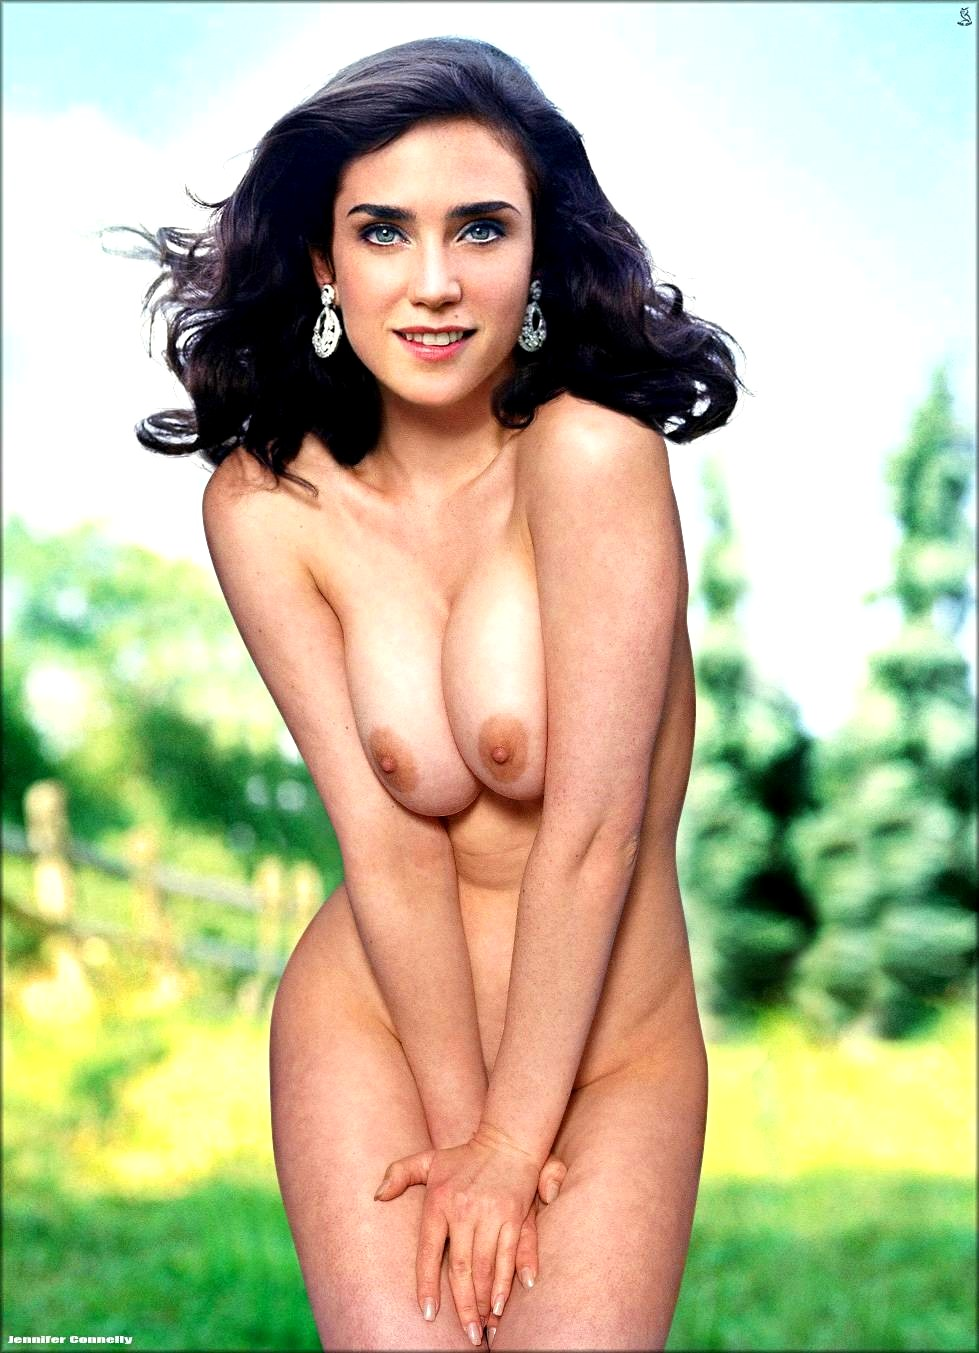 Jennifer connelly nude and wild sex in snowpiercer